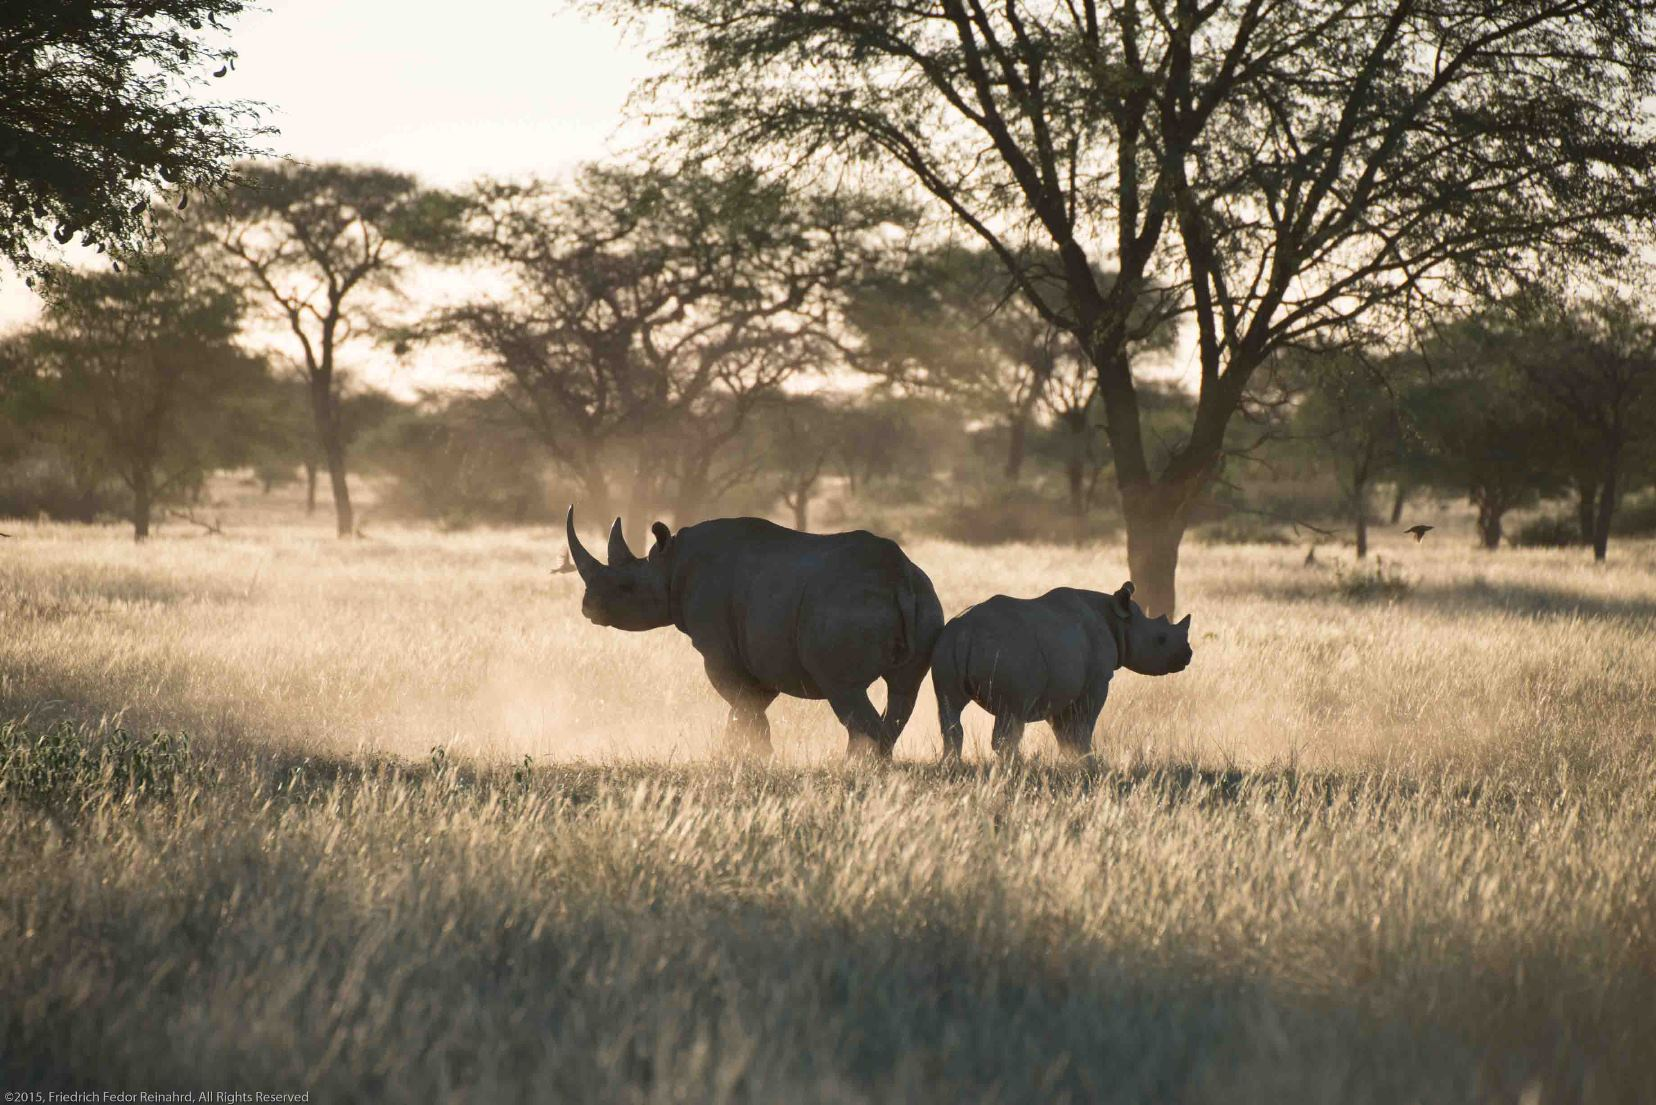 Rhinos in the Kuzikus reserve, Namibia.